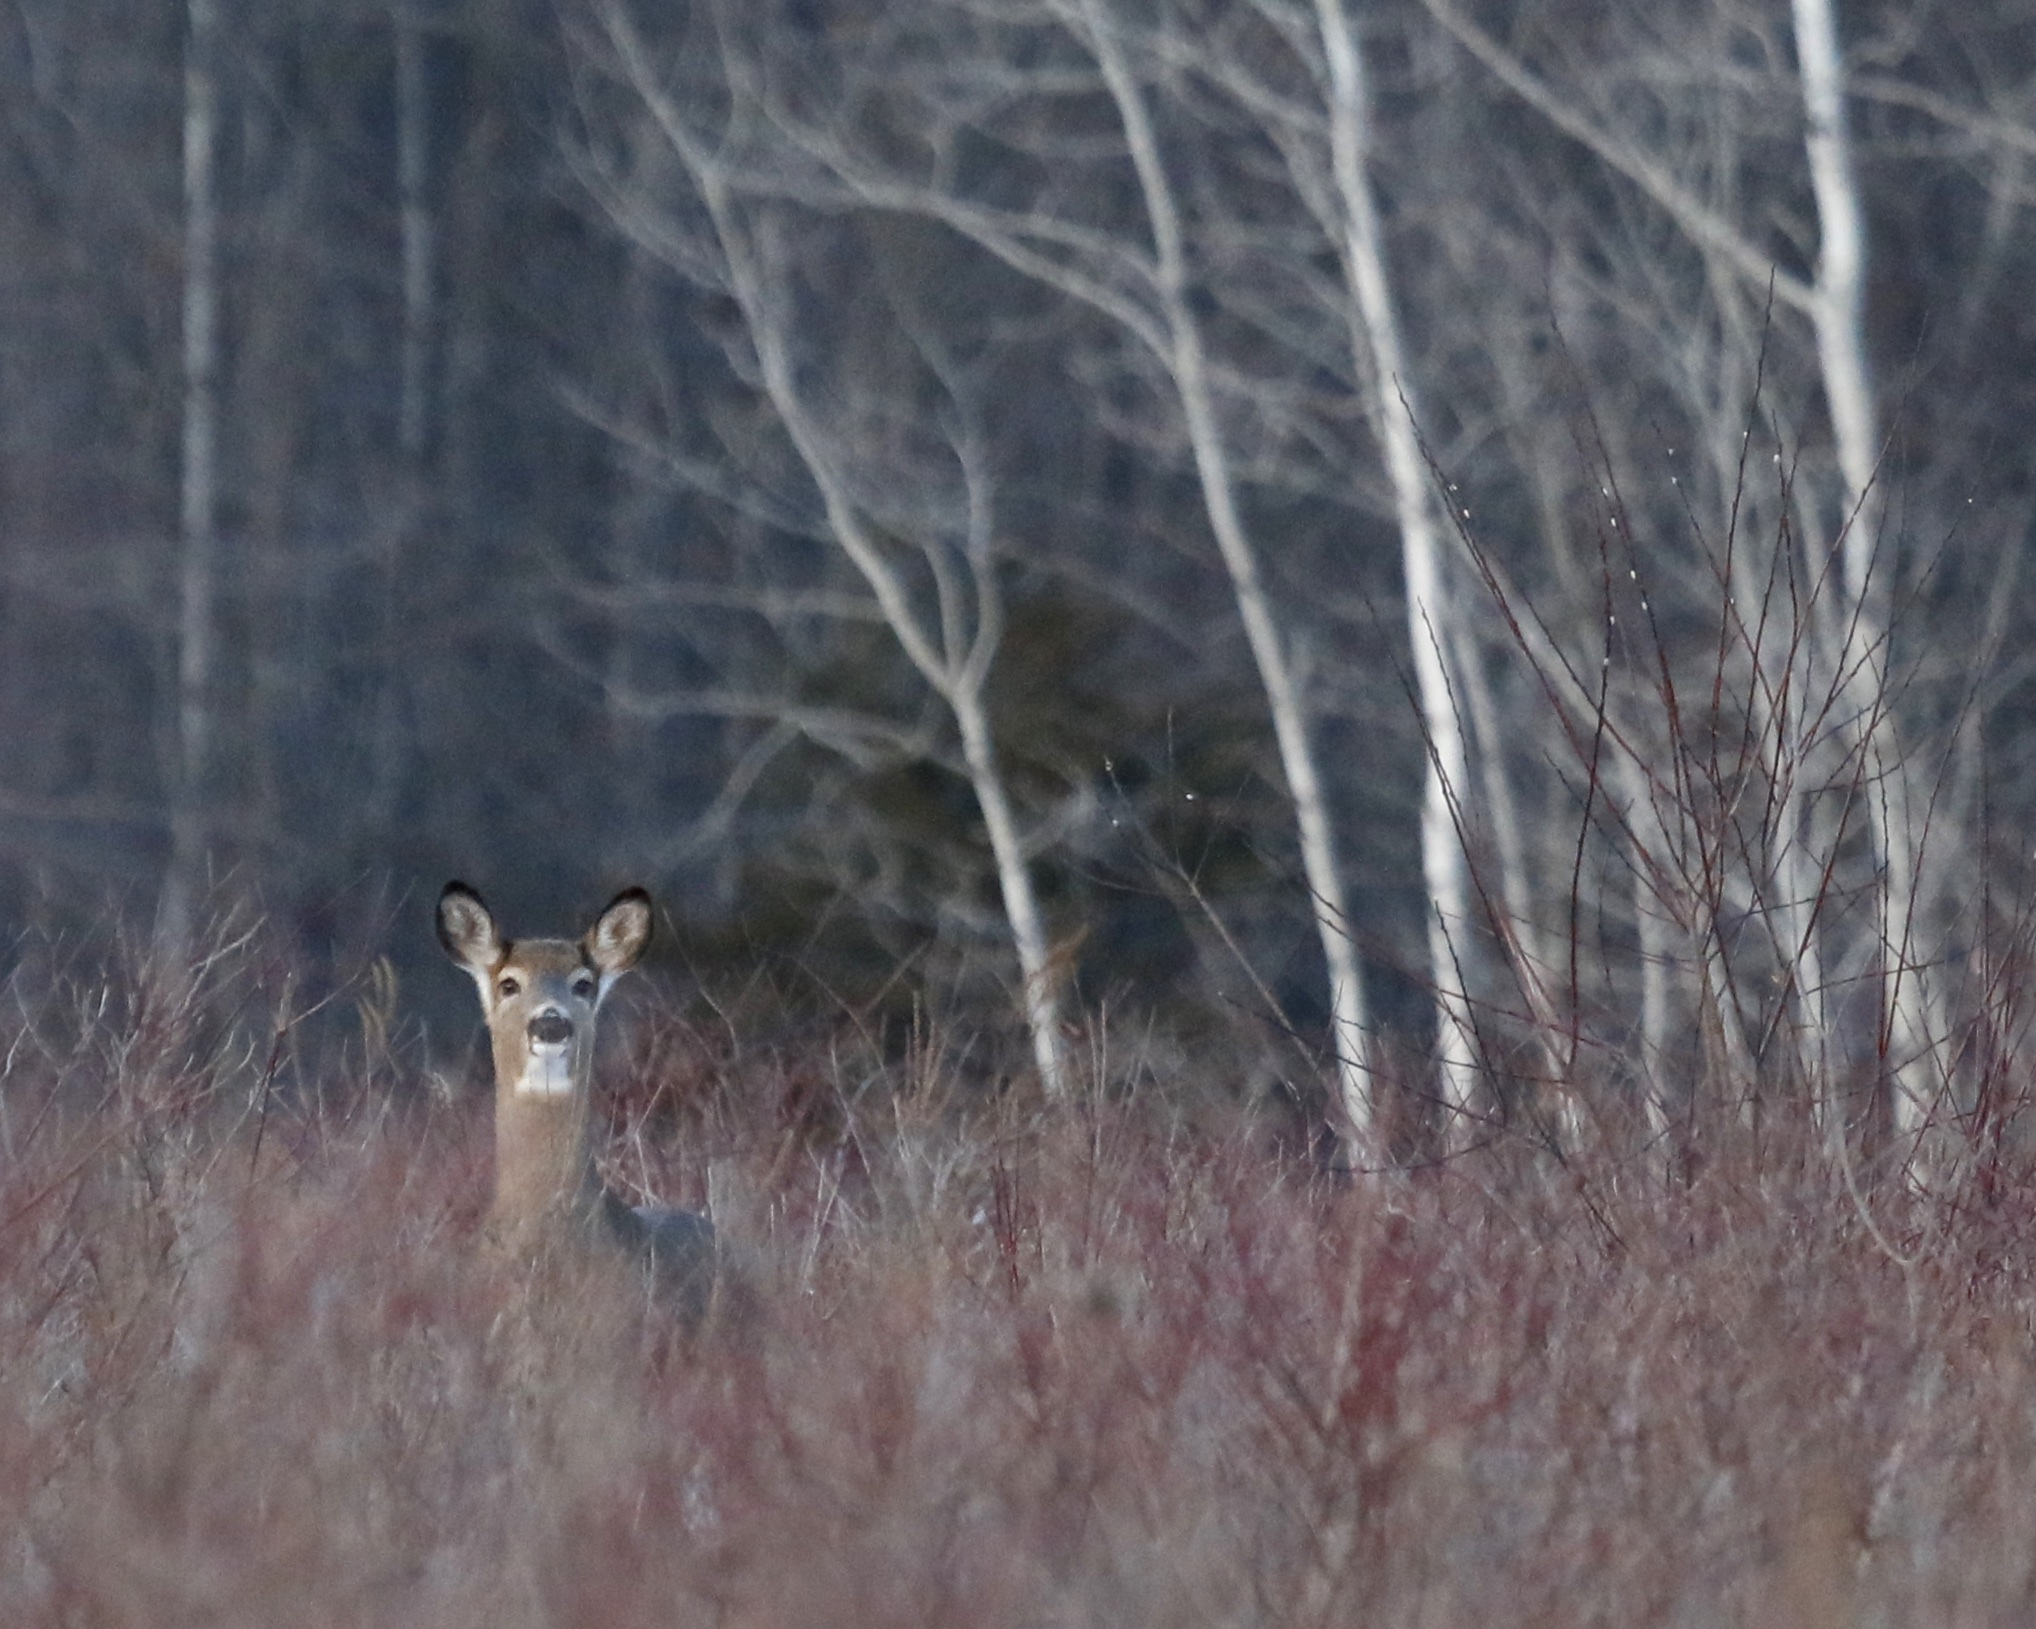 ~A deer checks things out at the Shawangunk Grasslands, 1/17/15.~